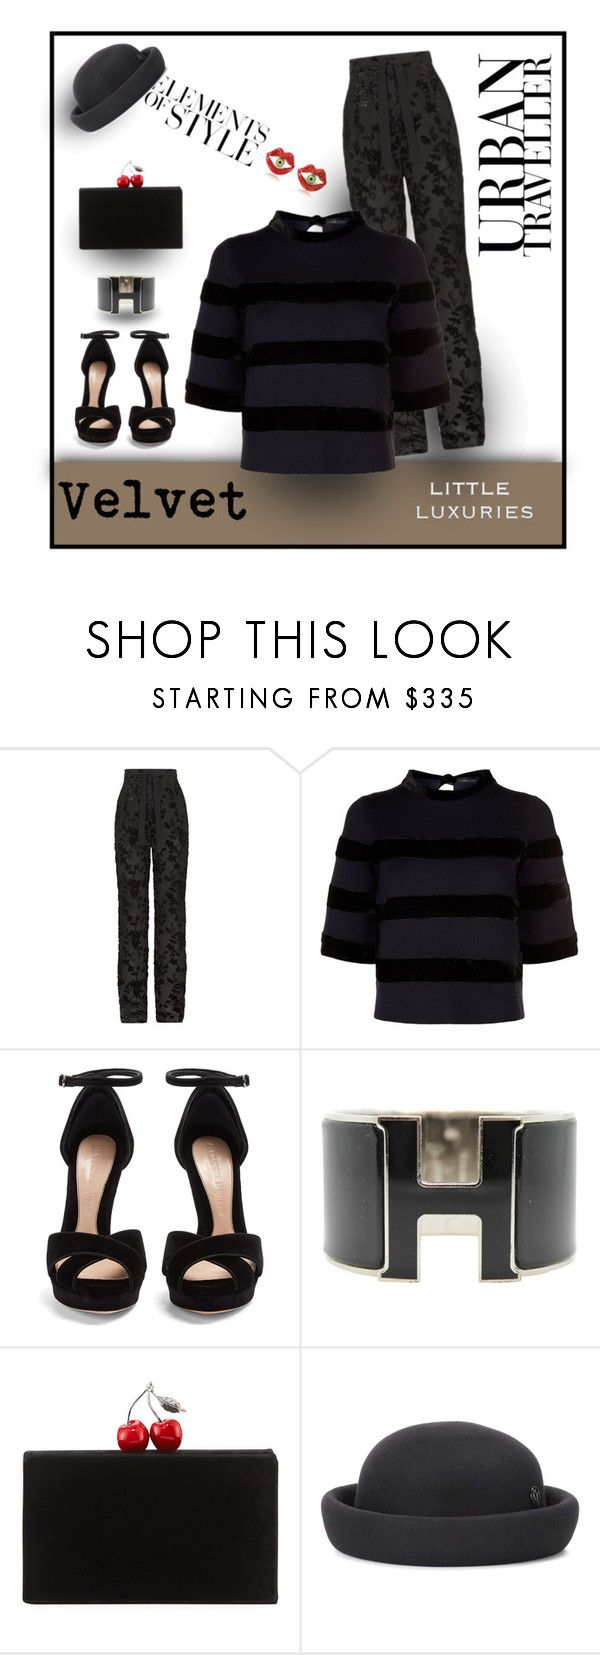 """""""Soft to Touch"""" by michelletheaflack ❤ liked on Polyvore featuring Etro, Maje, Alexander McQueen, Hermès, Edie Parker, Vera Wang, Maison Michel, Bernard Delettrez, velvet and styleinsider"""